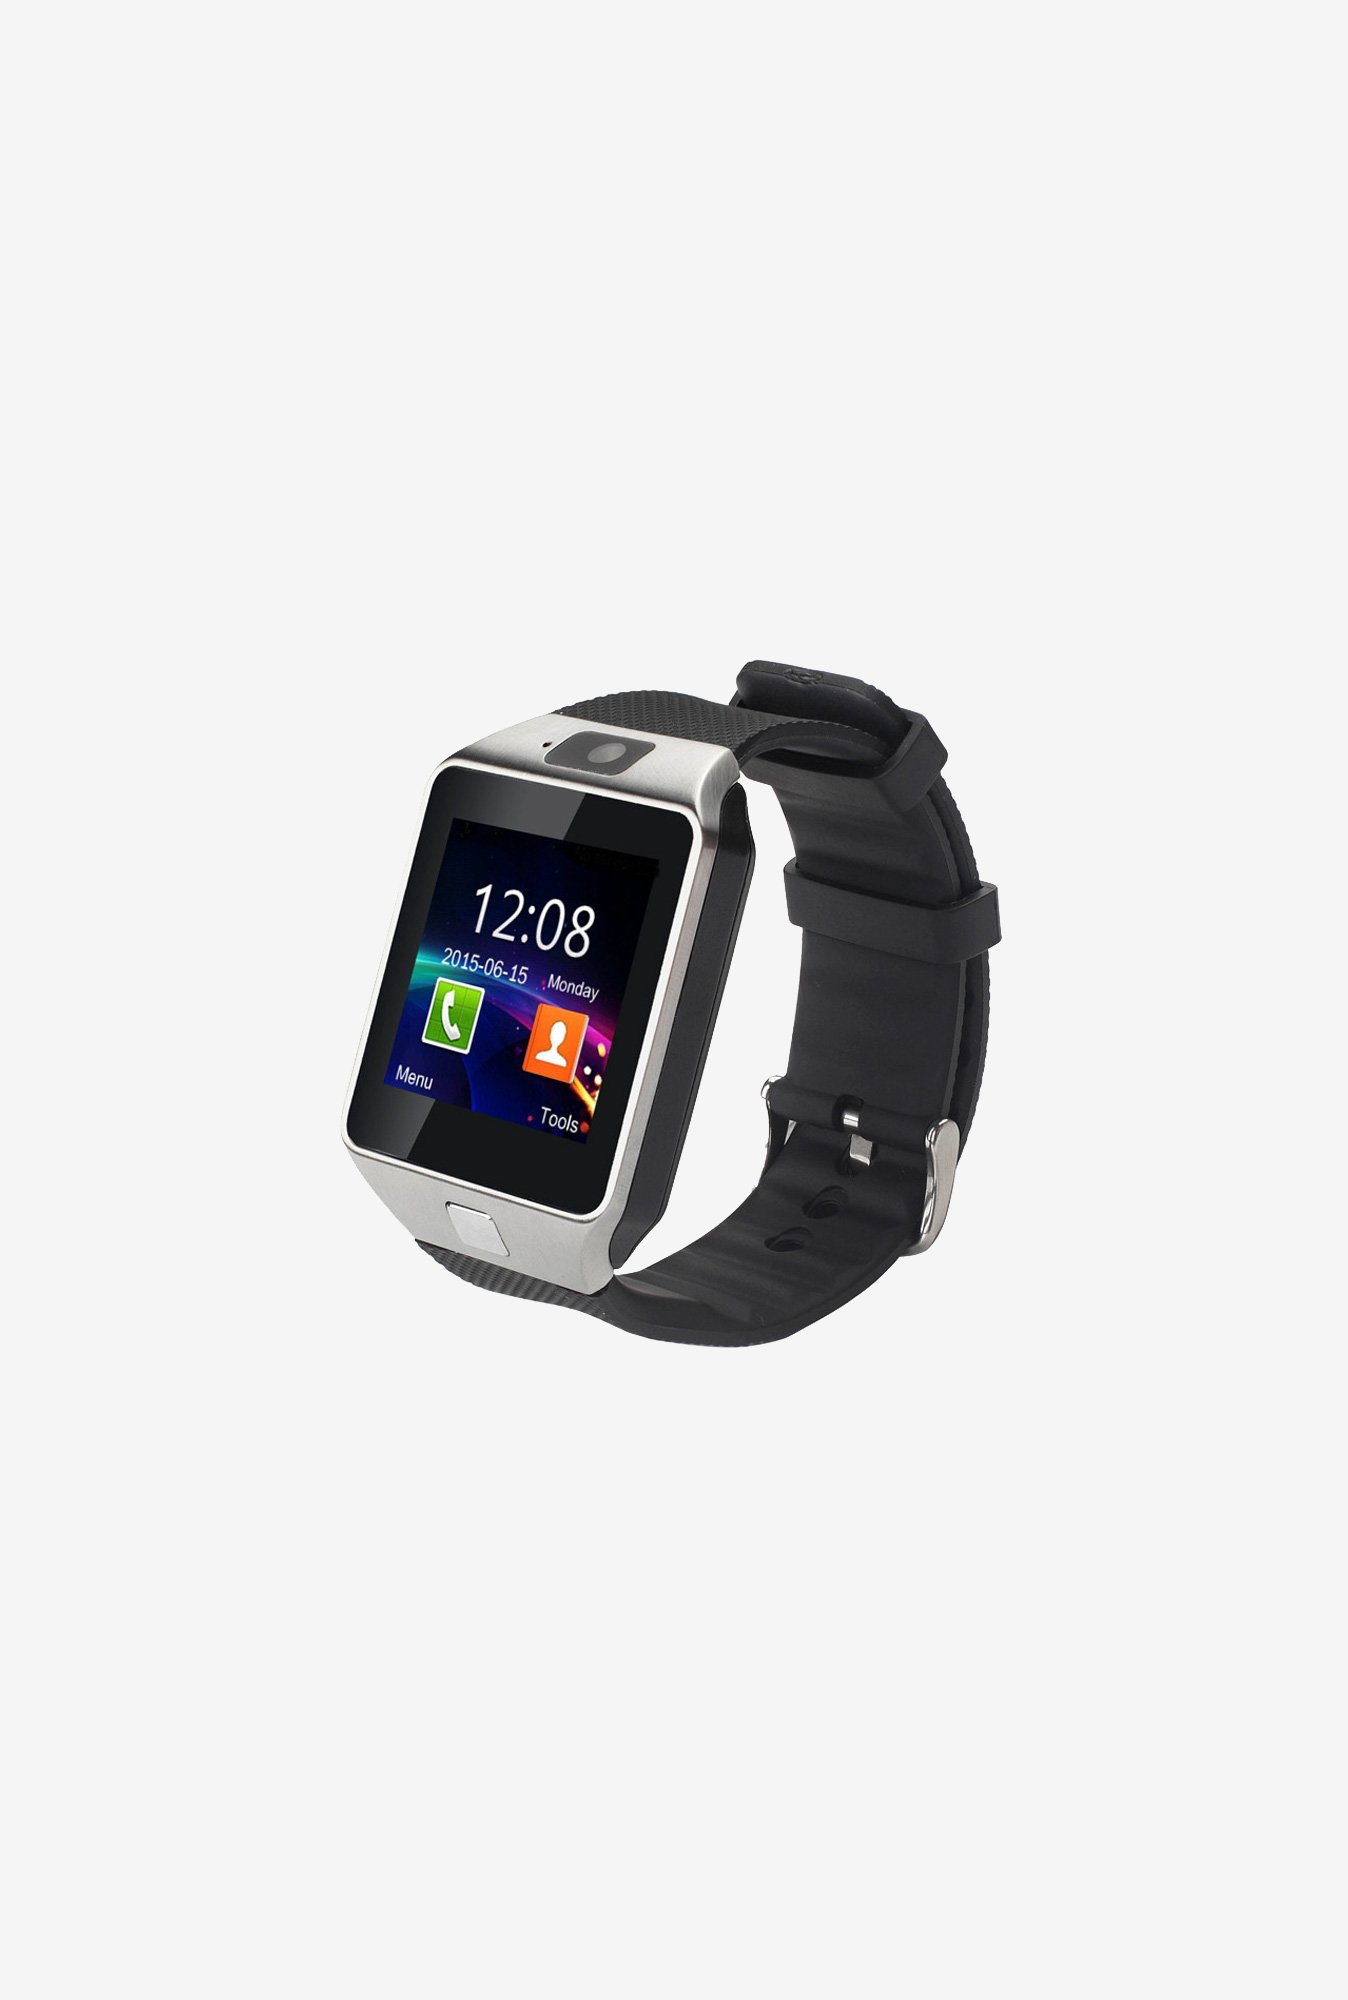 nfc connection mobile support tf sim with smartwatch bluetooth phones for card android original camera phone slot watches magellan smart product watch